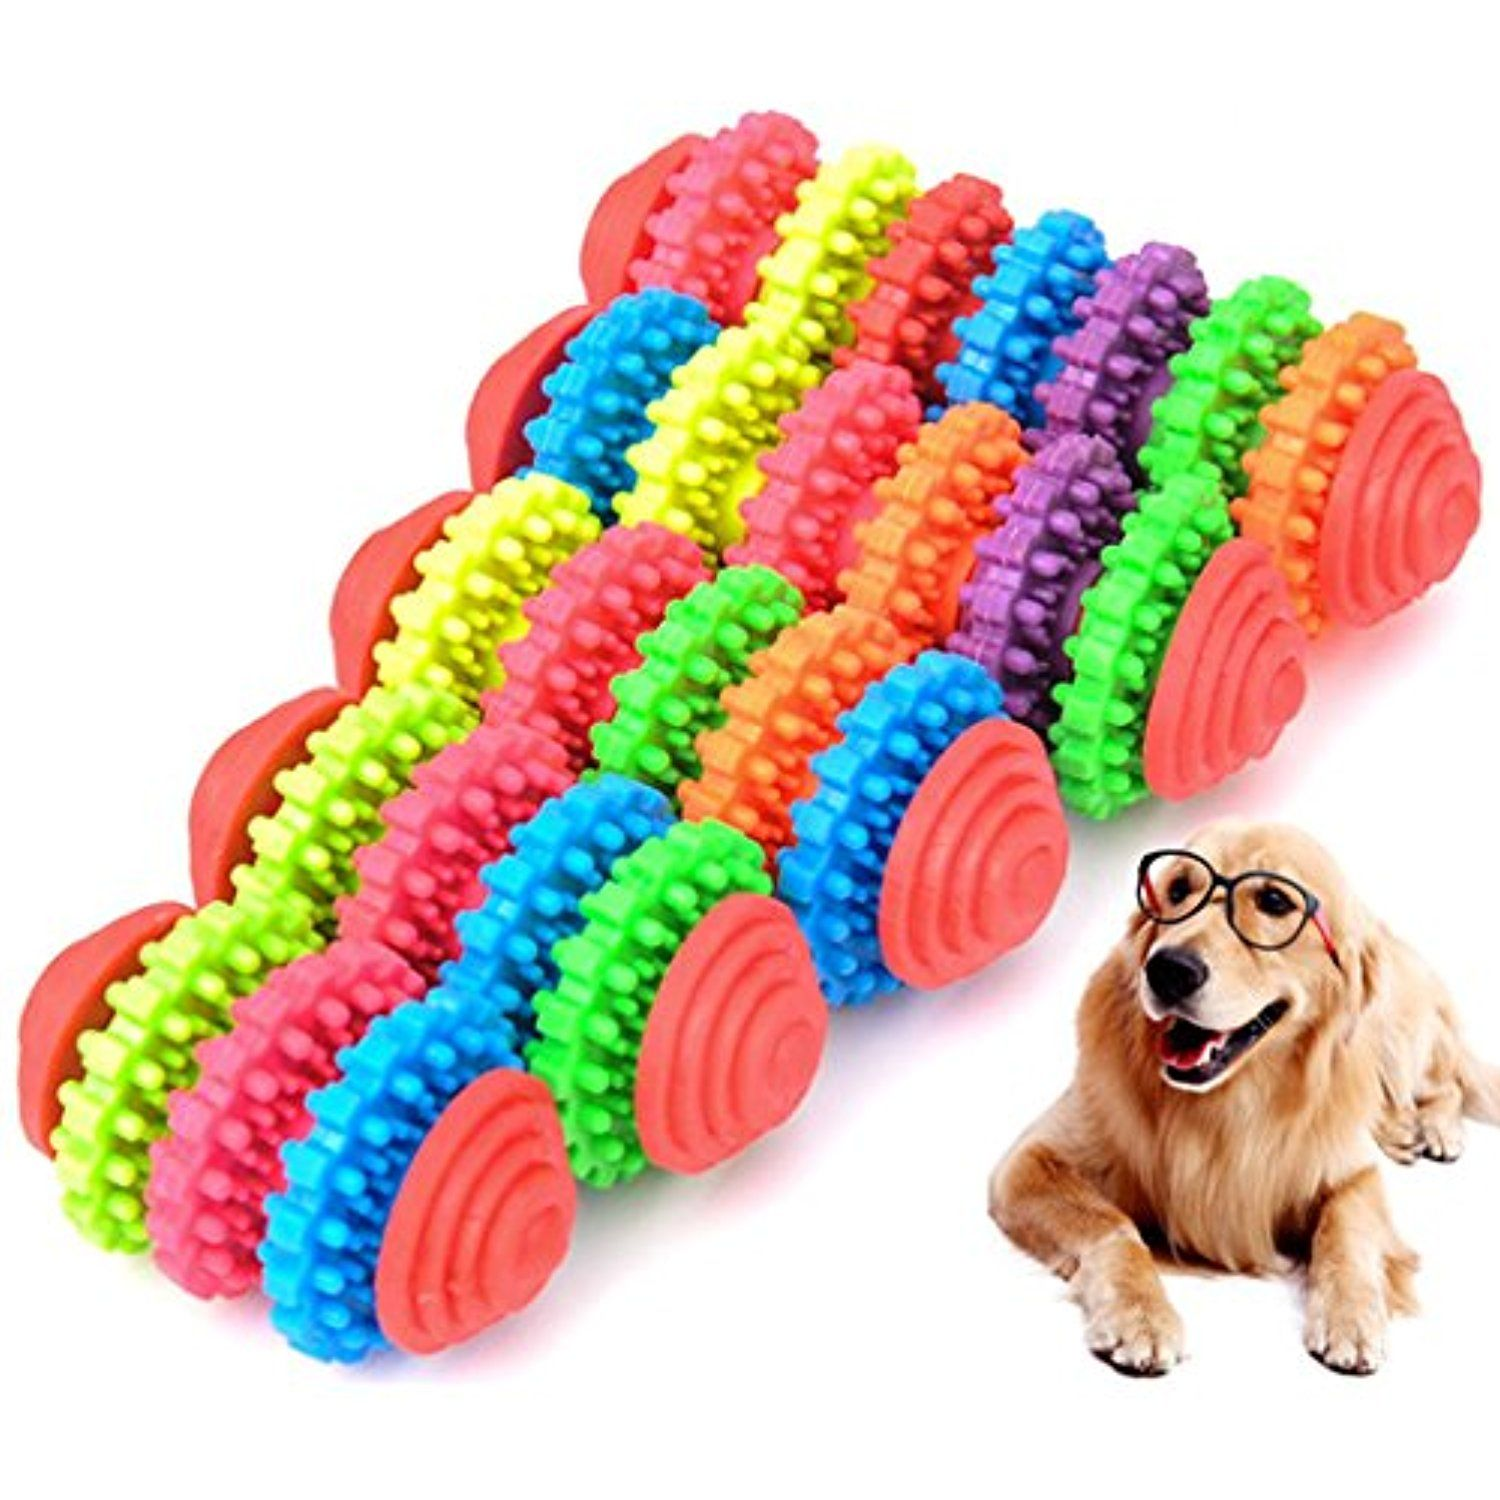 Dog Chew Toy Legendog 5pcs Dog Training Toy Colorful Non Toxic